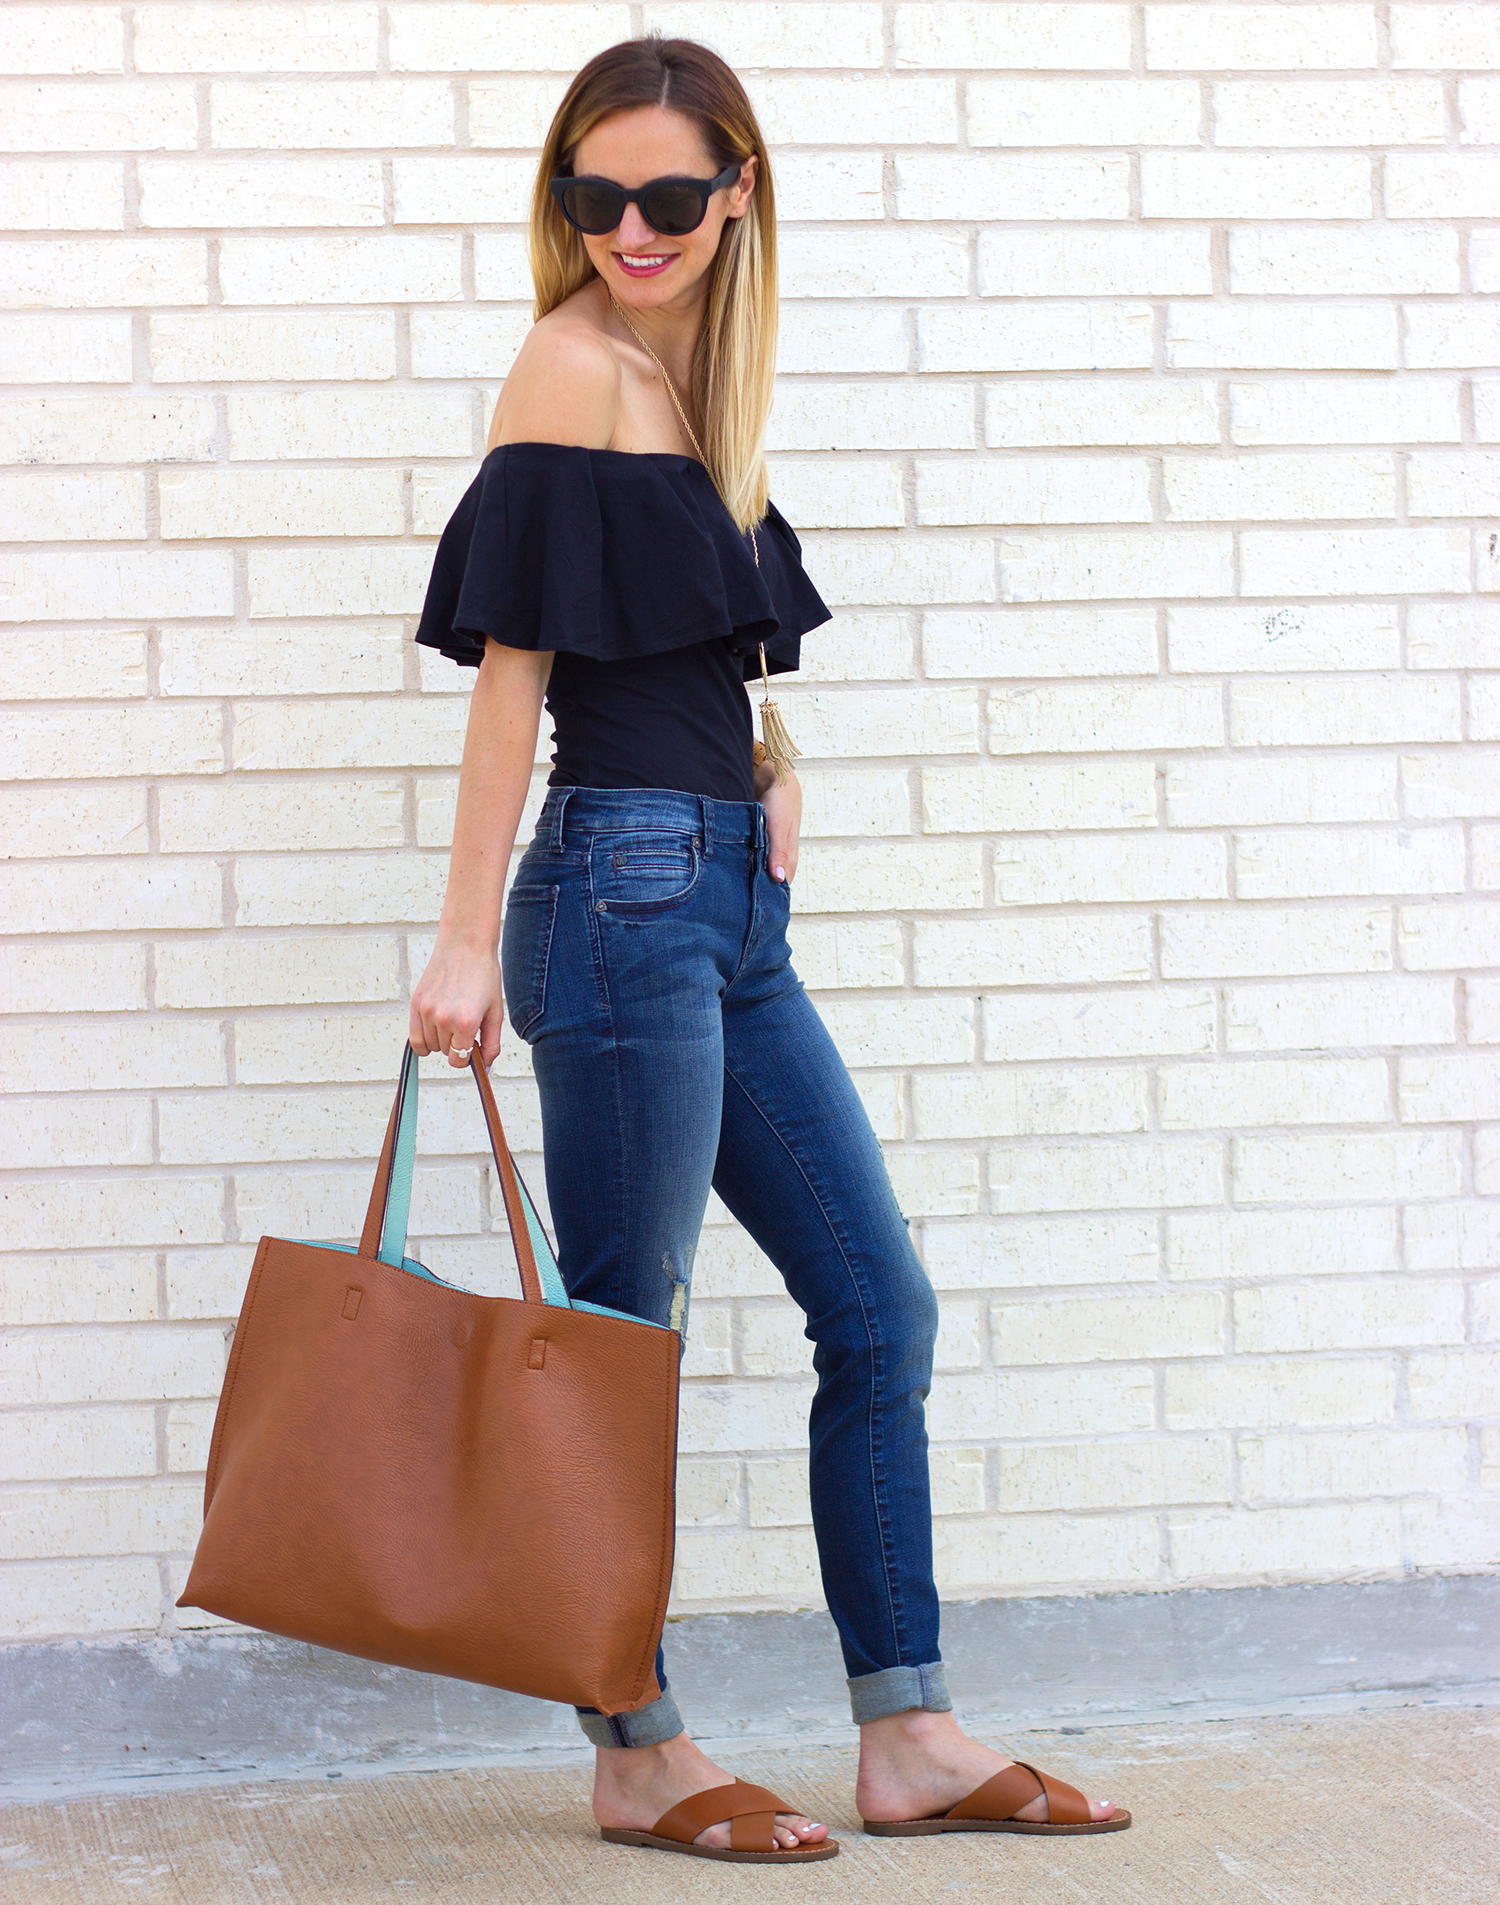 Blog: Go-To Denim For Spring With Nordstrom - LivvyLand